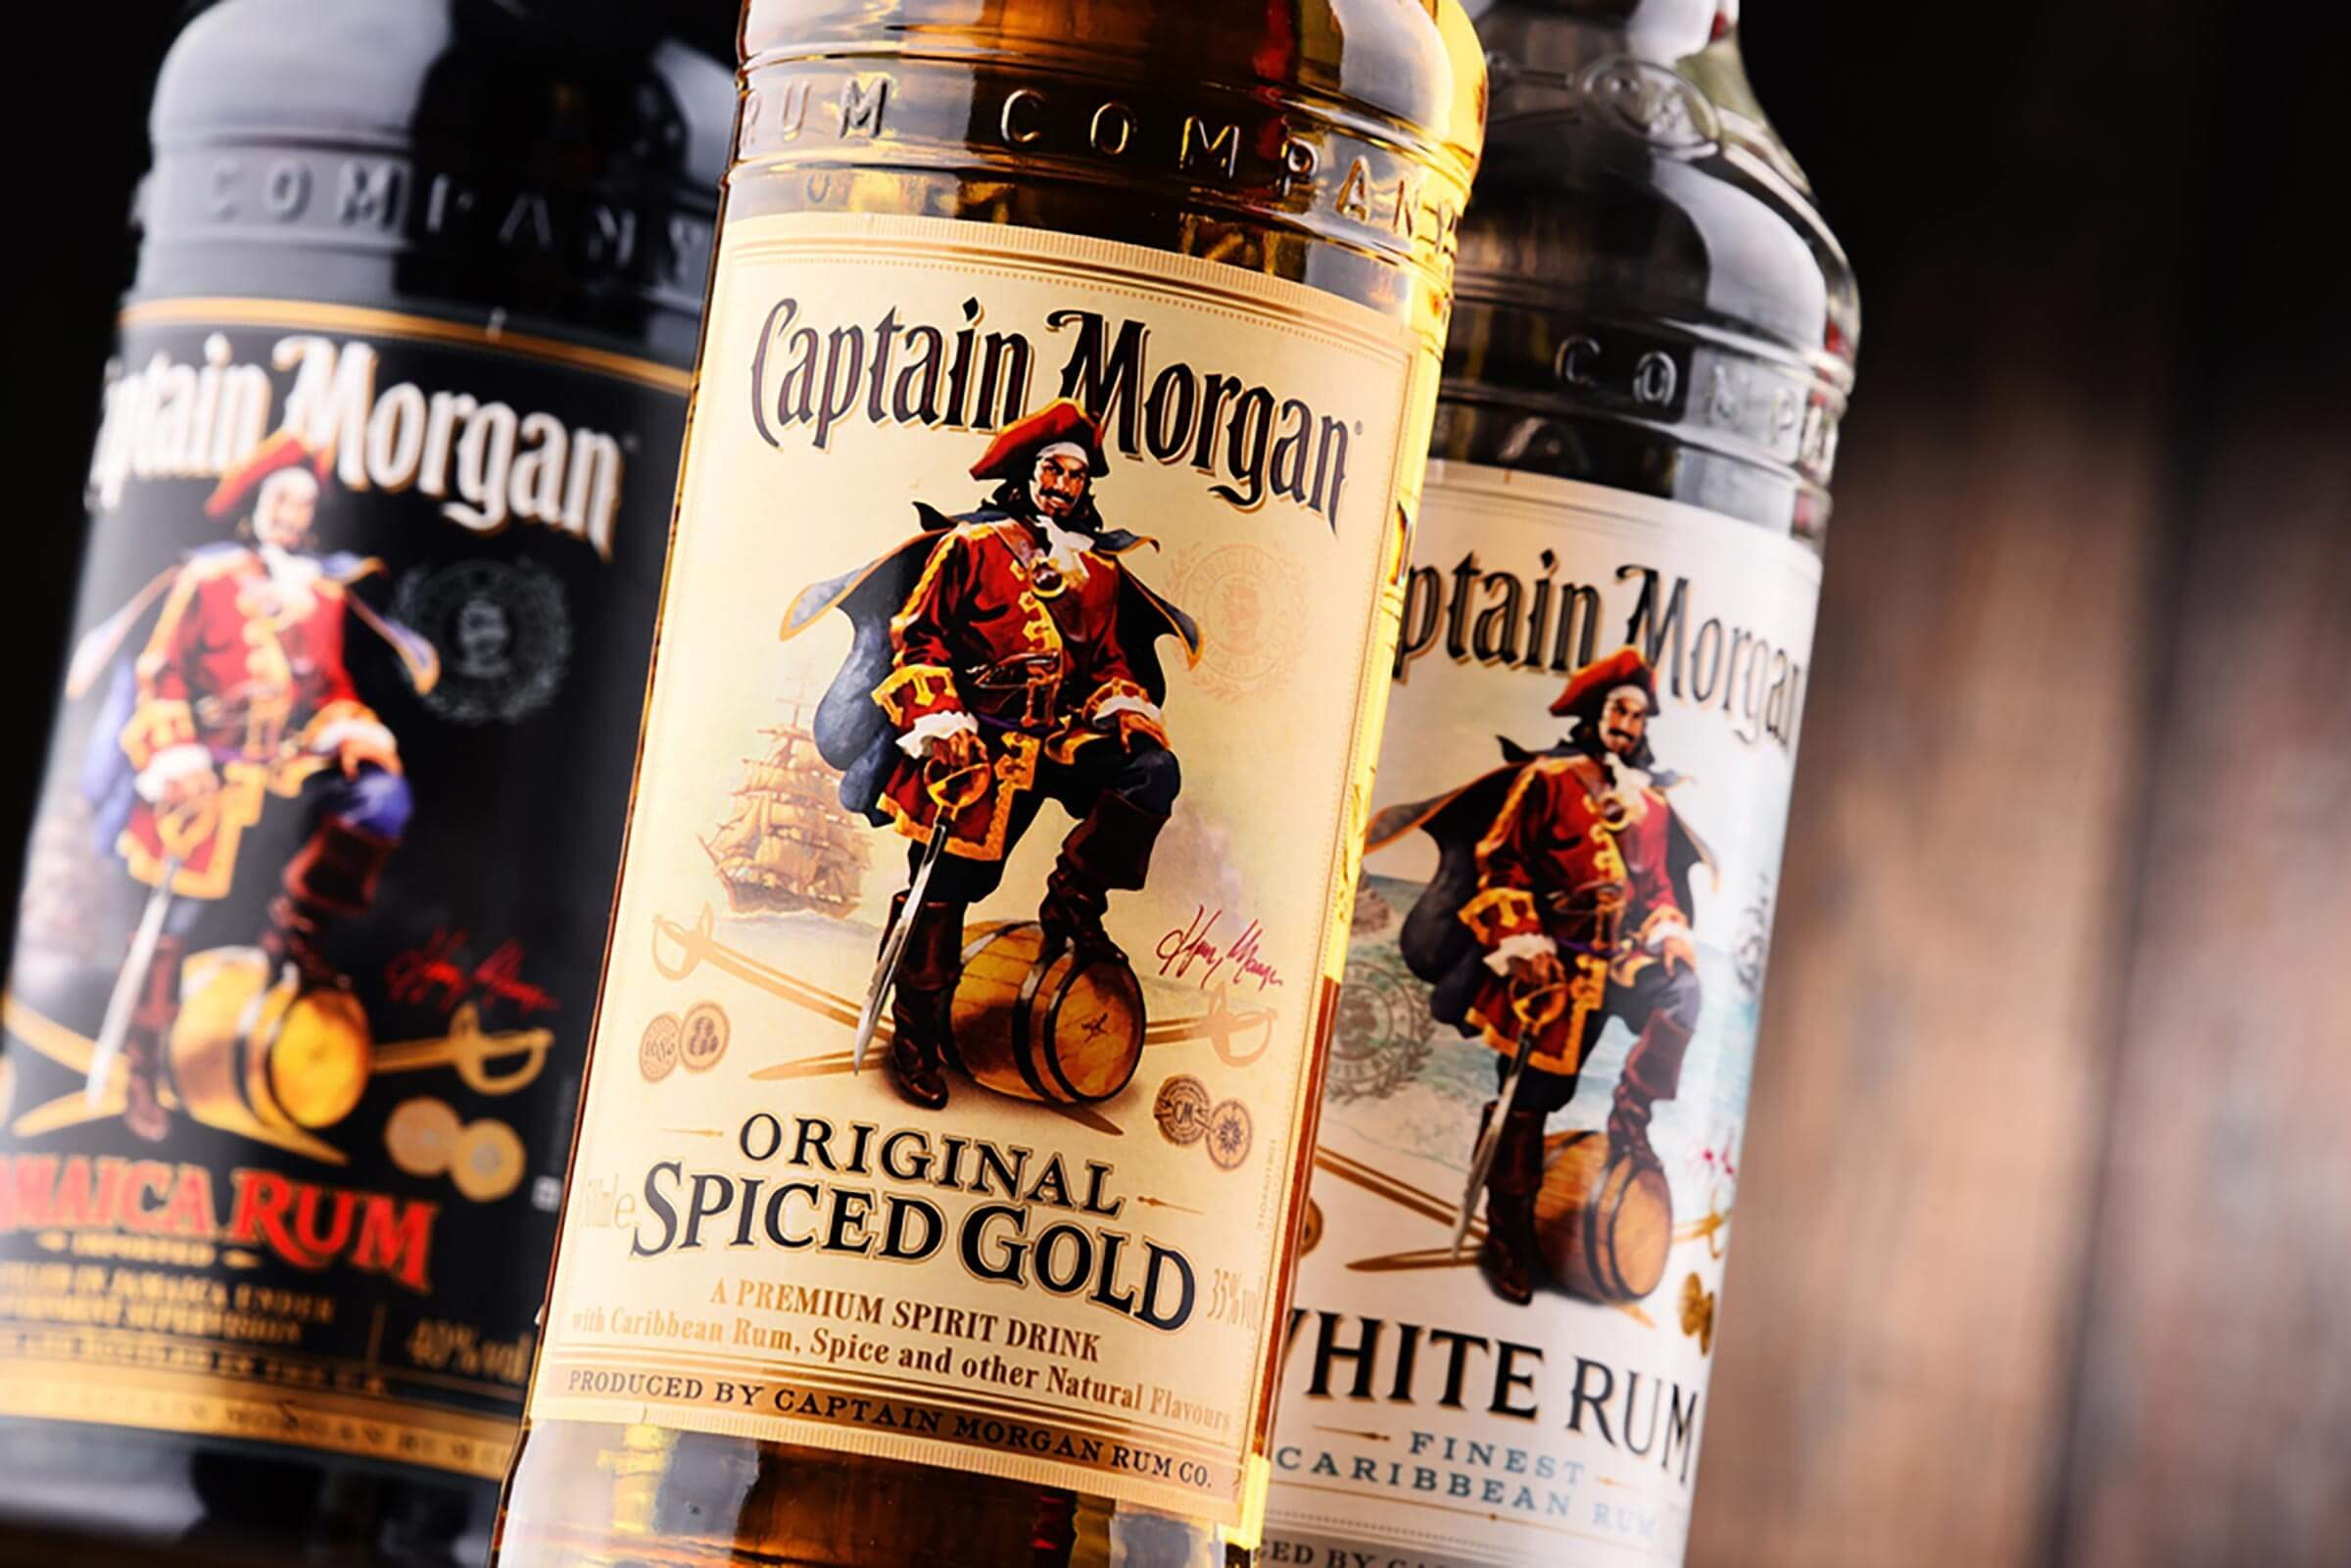 who was captain morgan and why is there a rum named after him